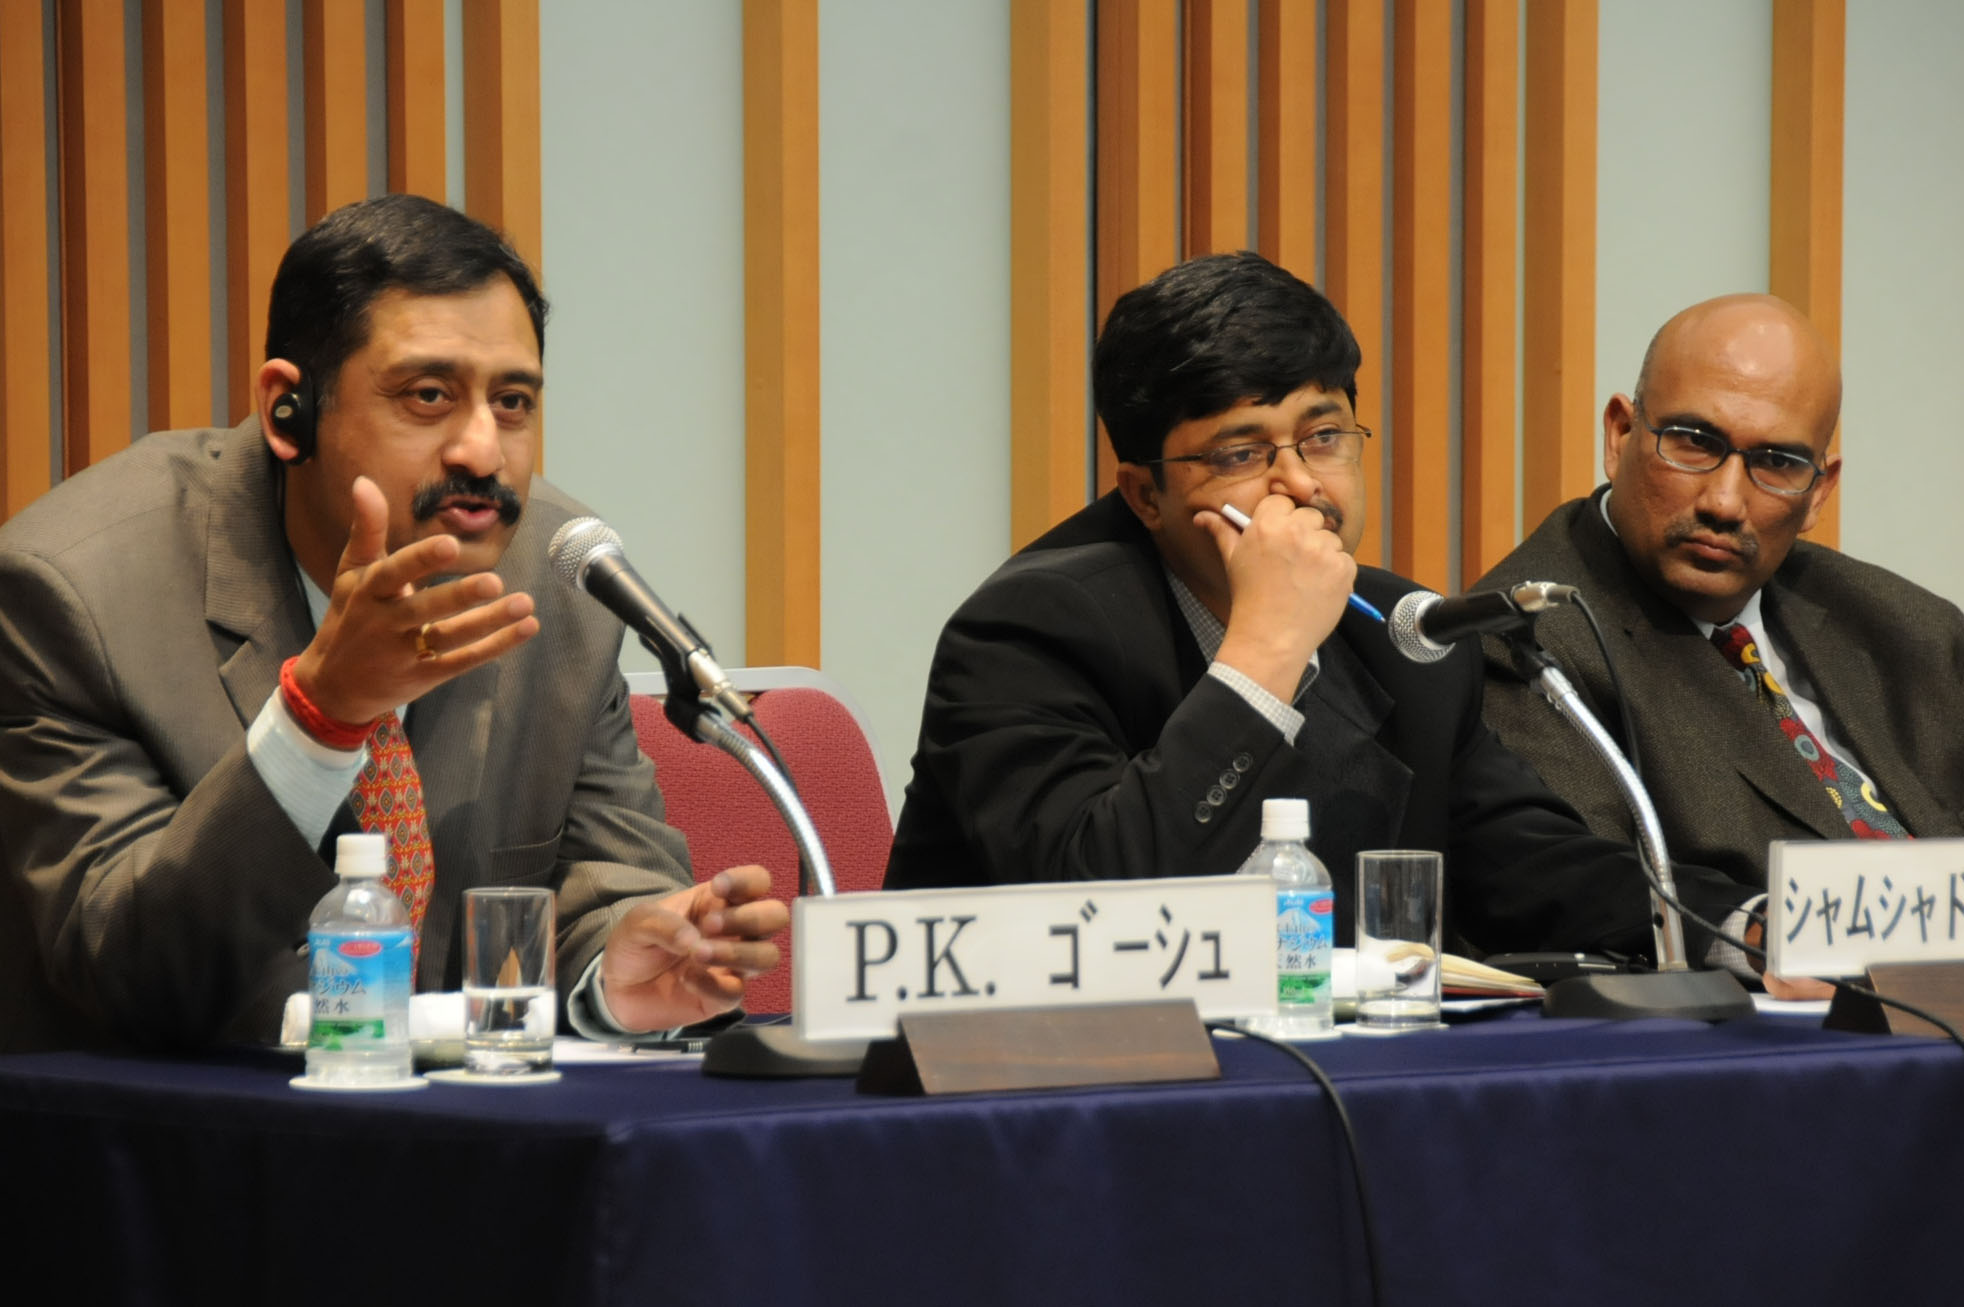 Probal Ghosh (left) of the Observer Research Foundation talks about maritime security in the Indian Ocean as Shamshad Ahmad Khan from the Institute of Defense Studies and Analyses listens. | SATOKO KAWASAKI